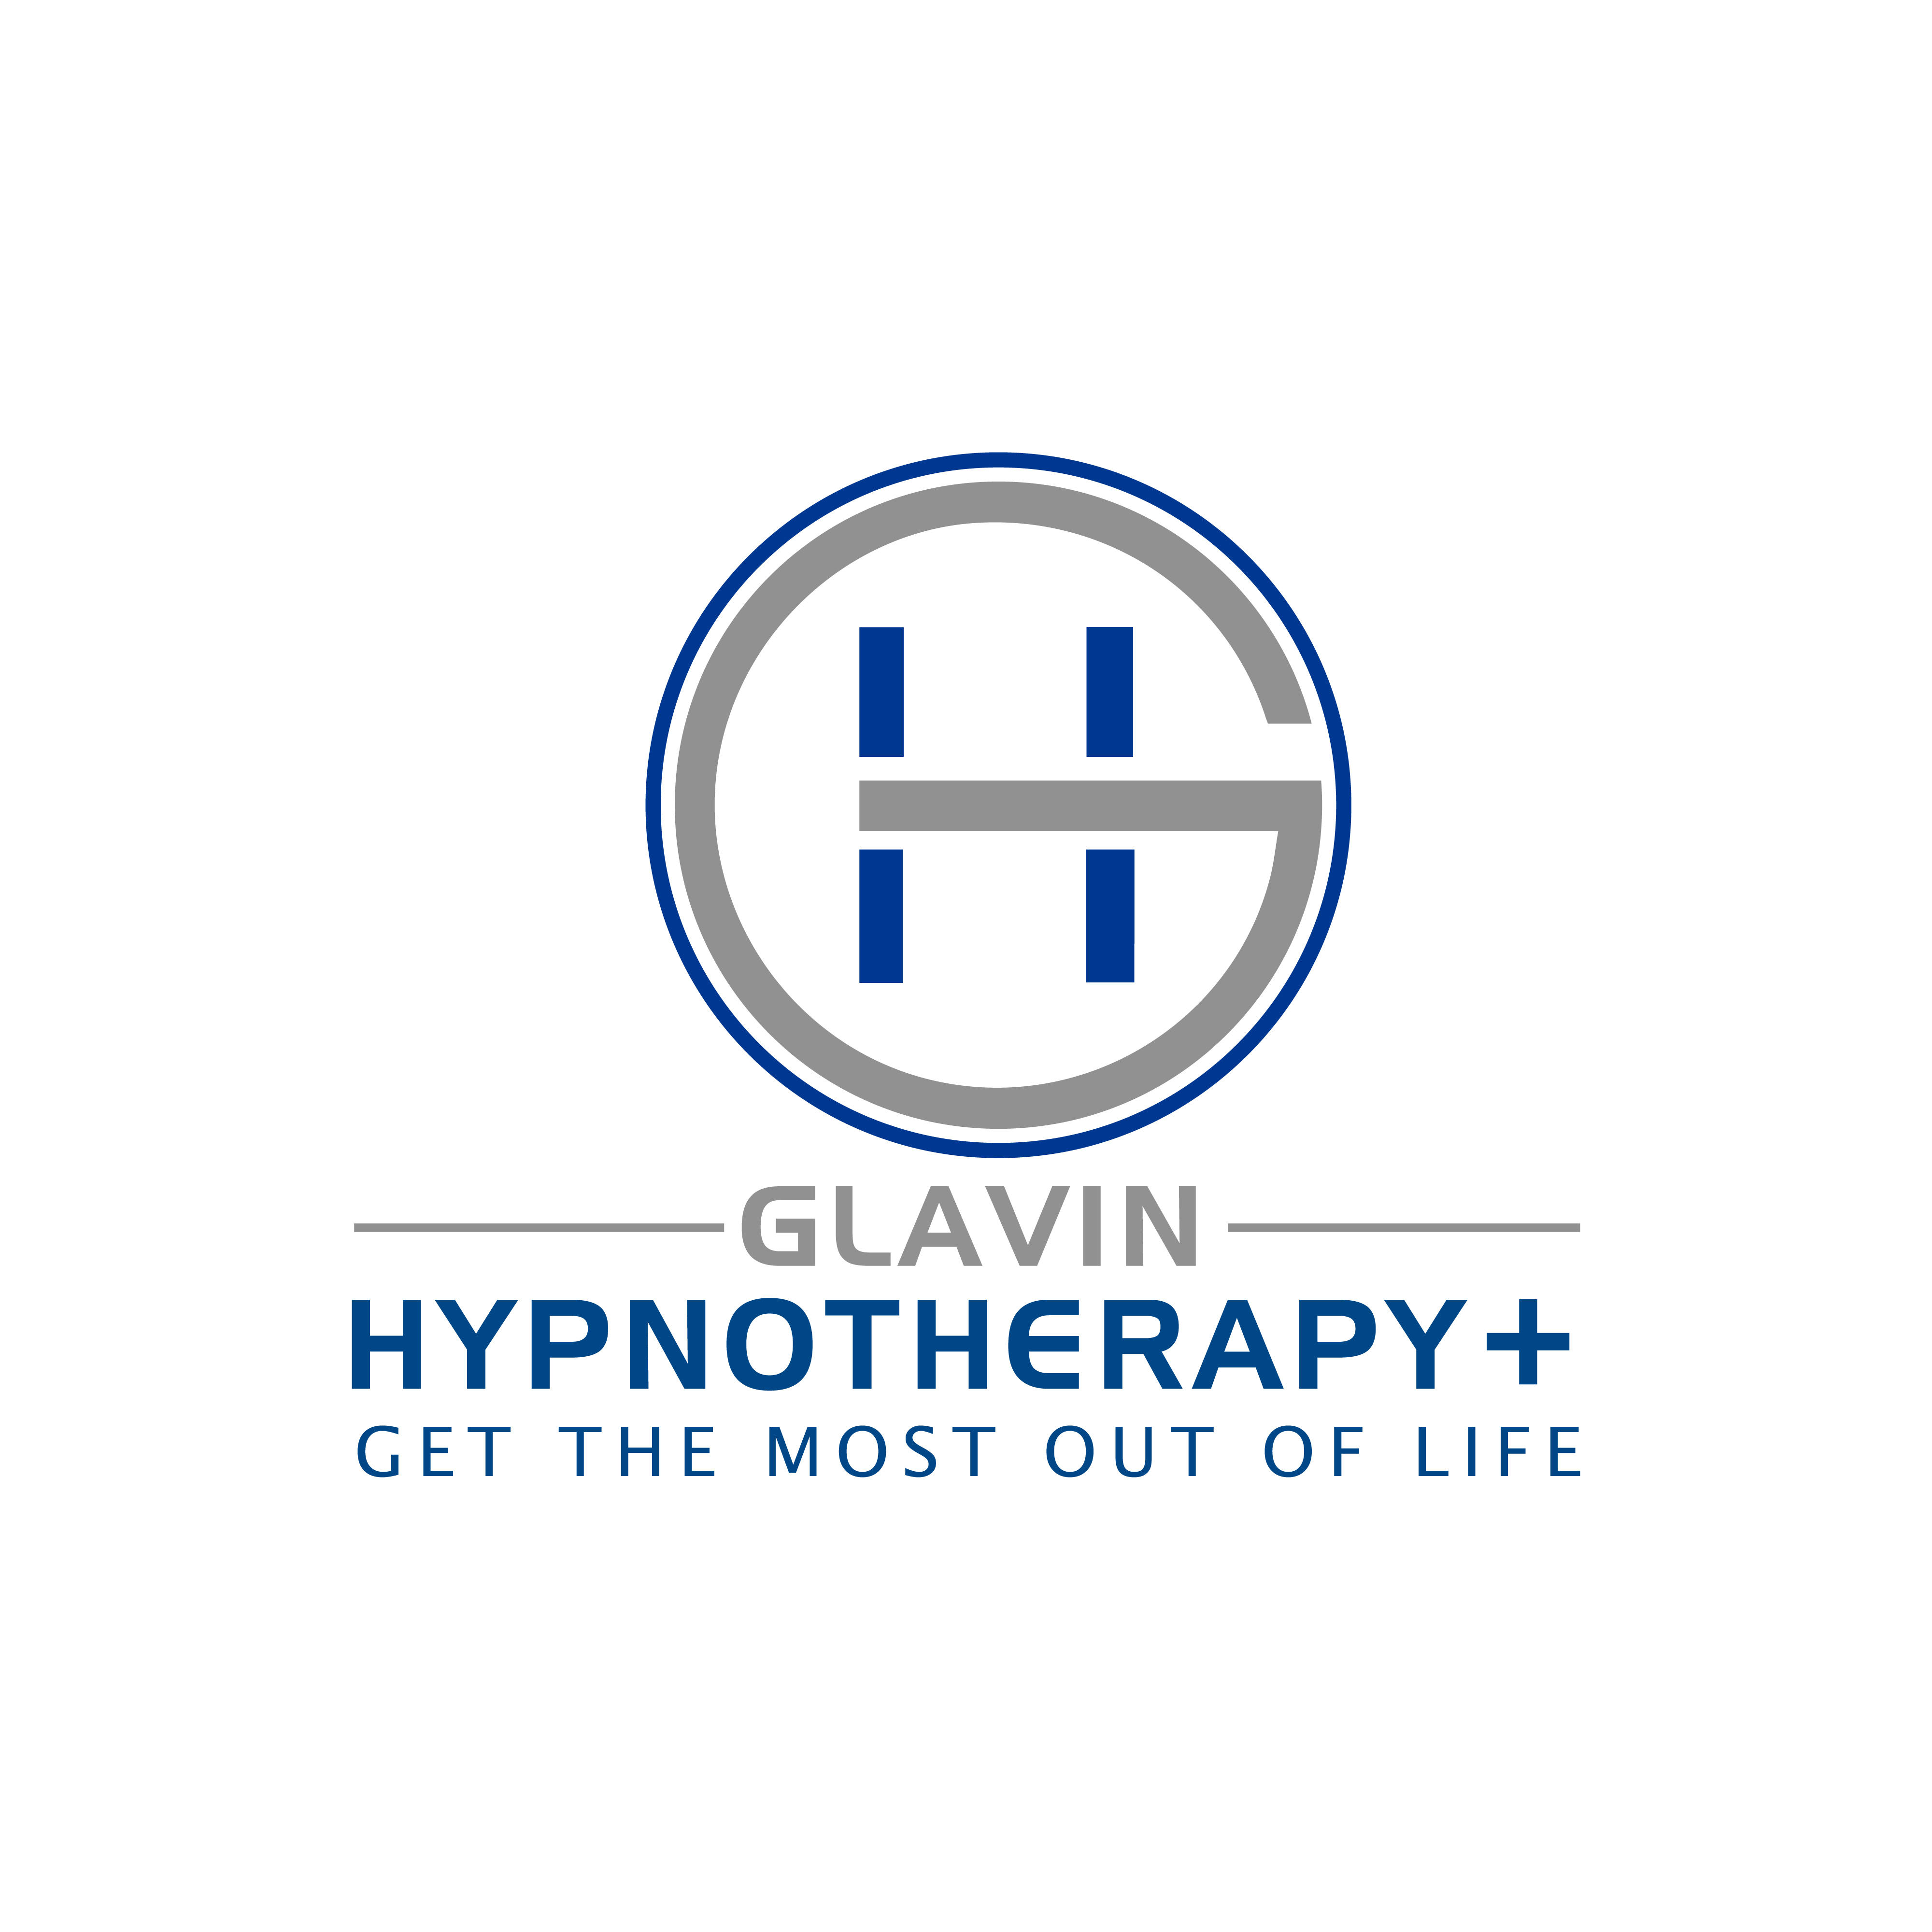 Glavin Hypnotherapy+ - St. Peters, MO 63304 - (314)285-5721 | ShowMeLocal.com